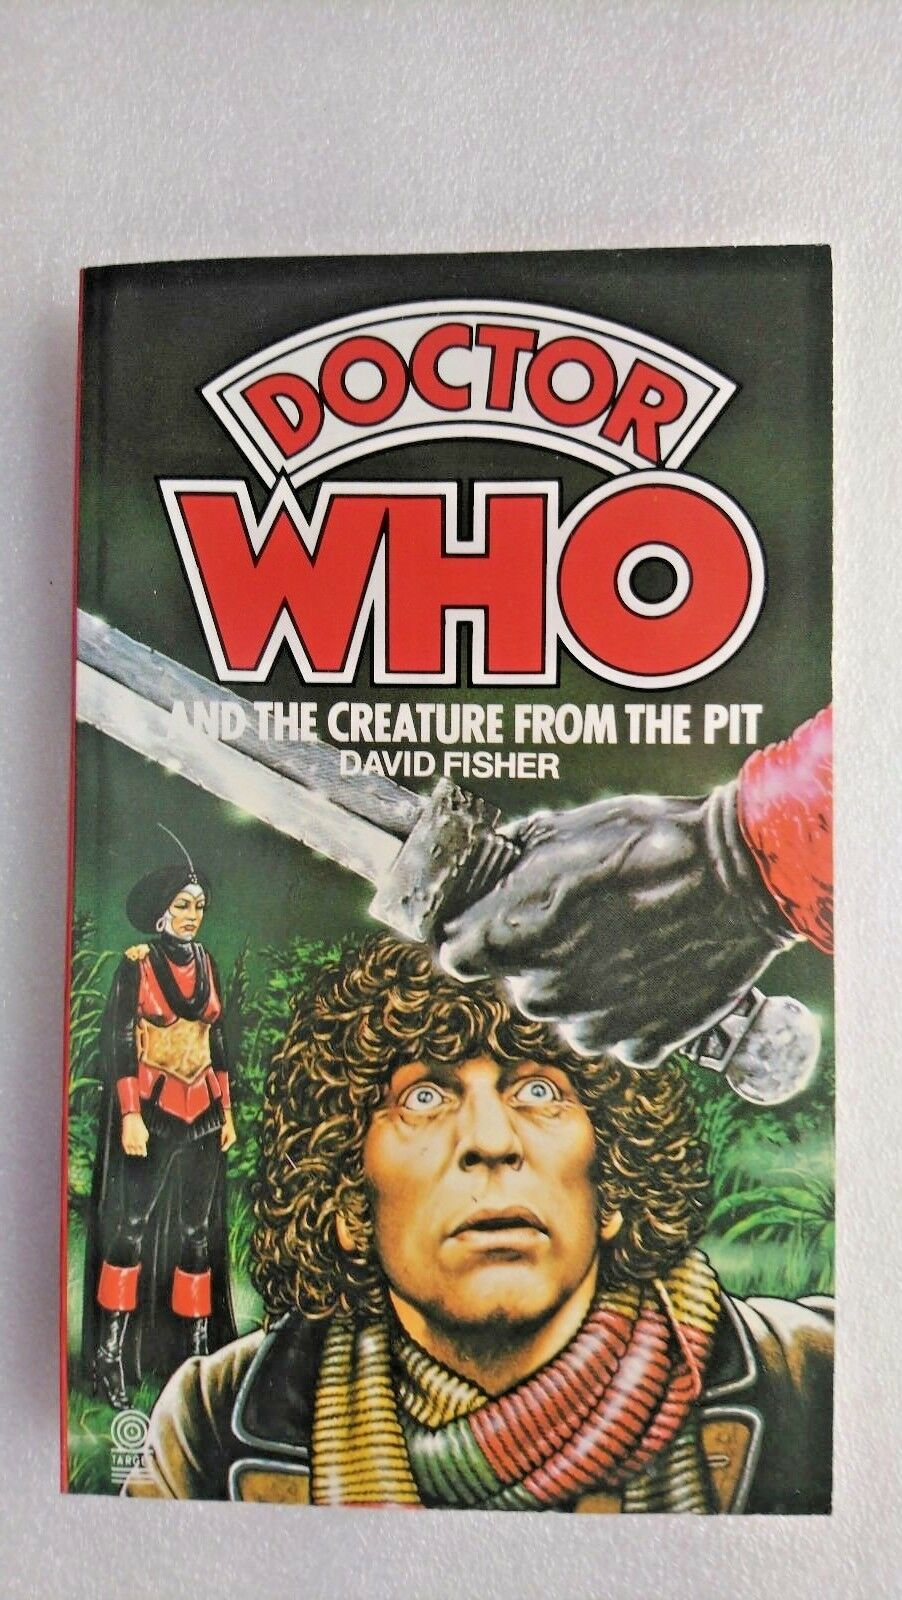 Doctor Who and the Creature from the Pit by David Fisher (Paperback, 1984)